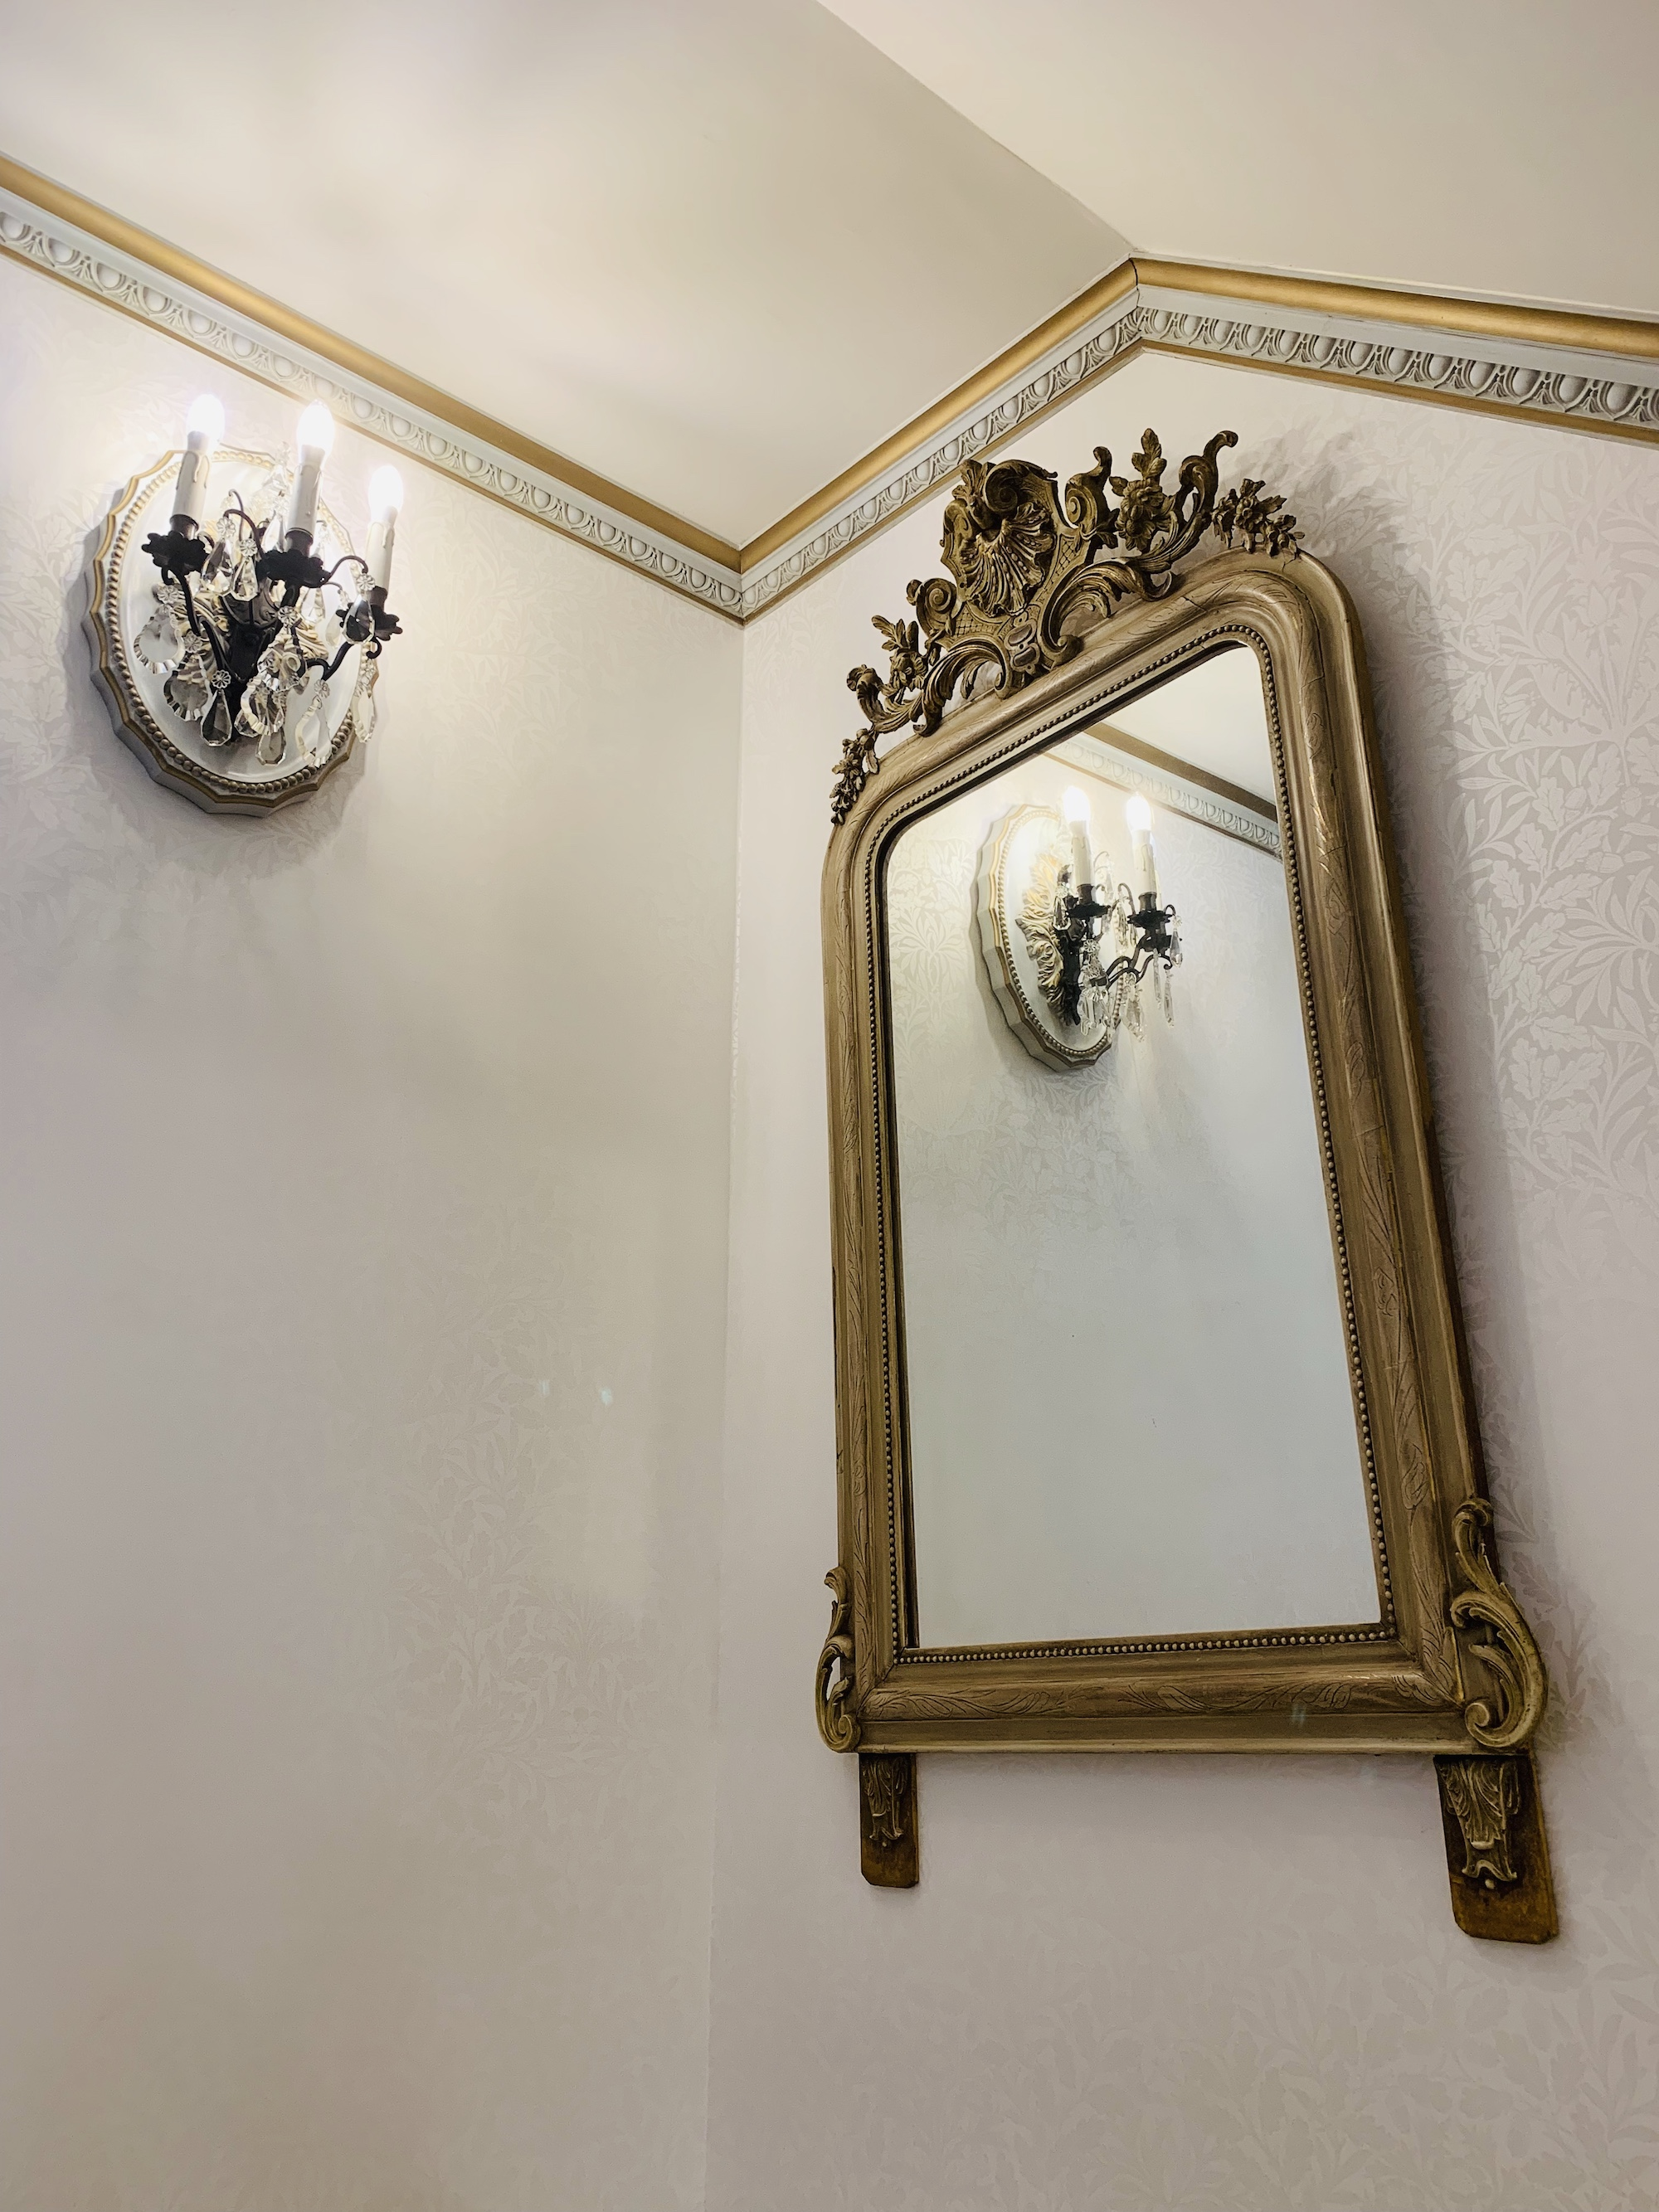 French mirror and wall lights in the stairwell